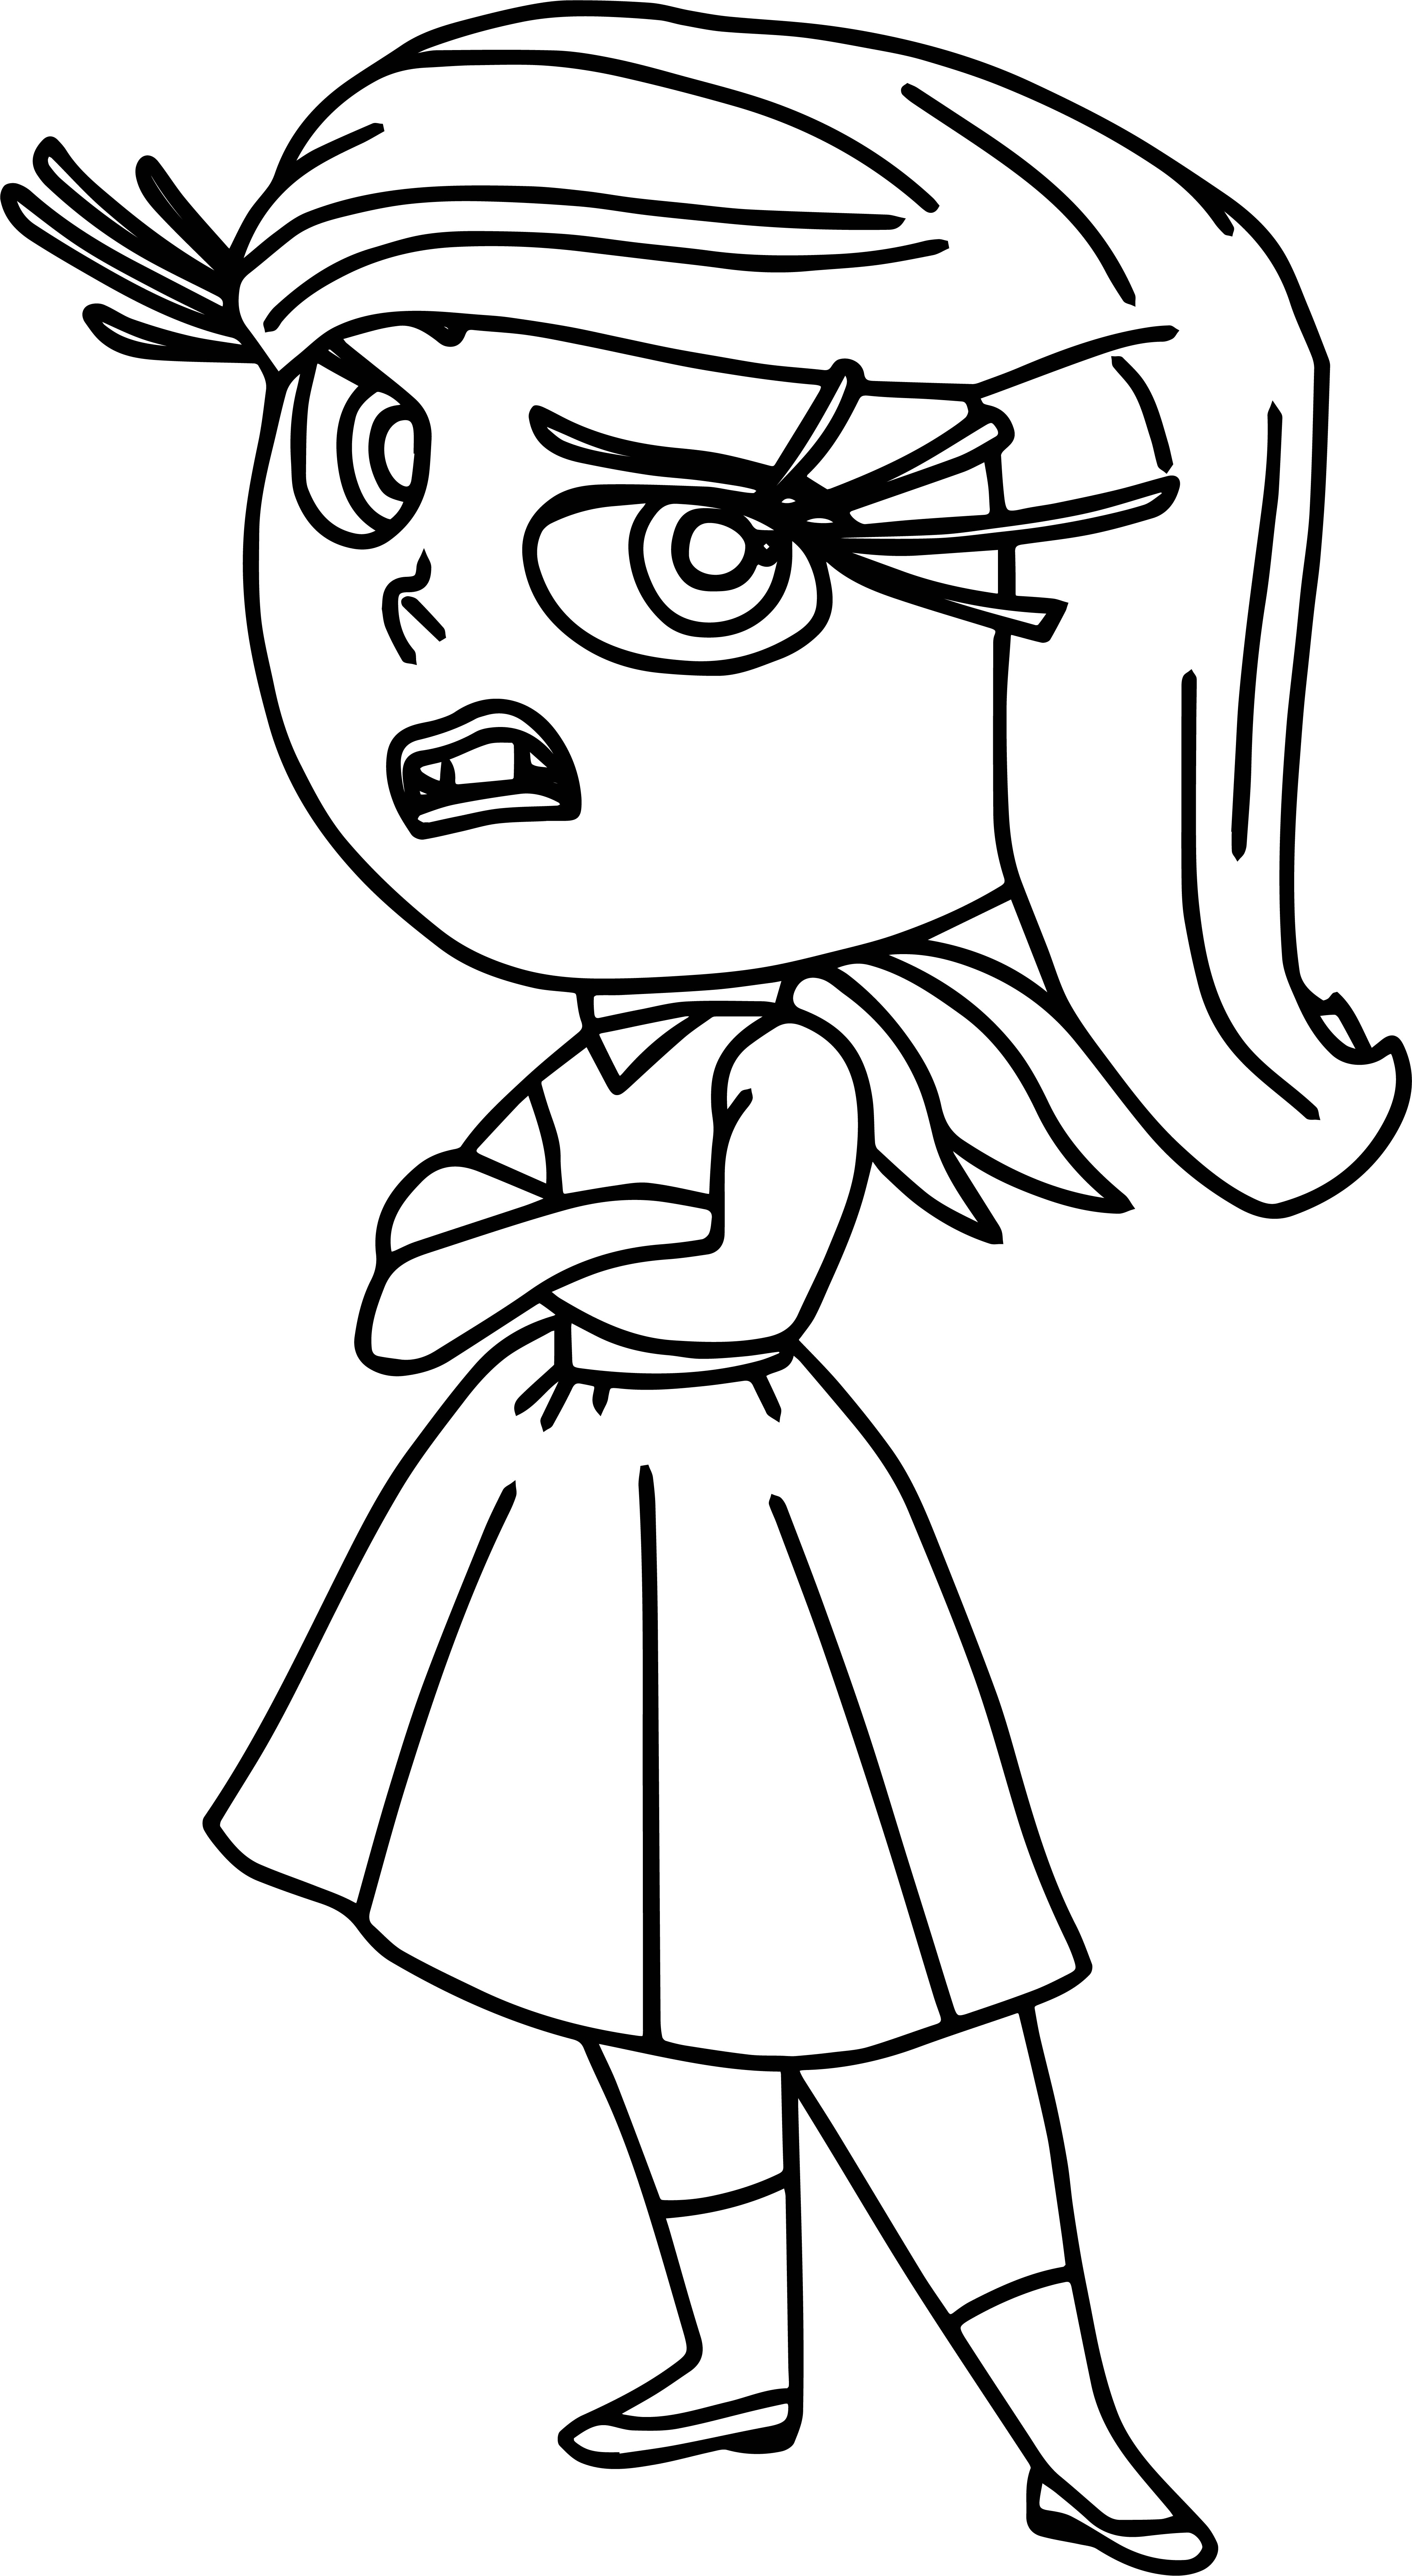 Insideout Disgust Coloring Pages